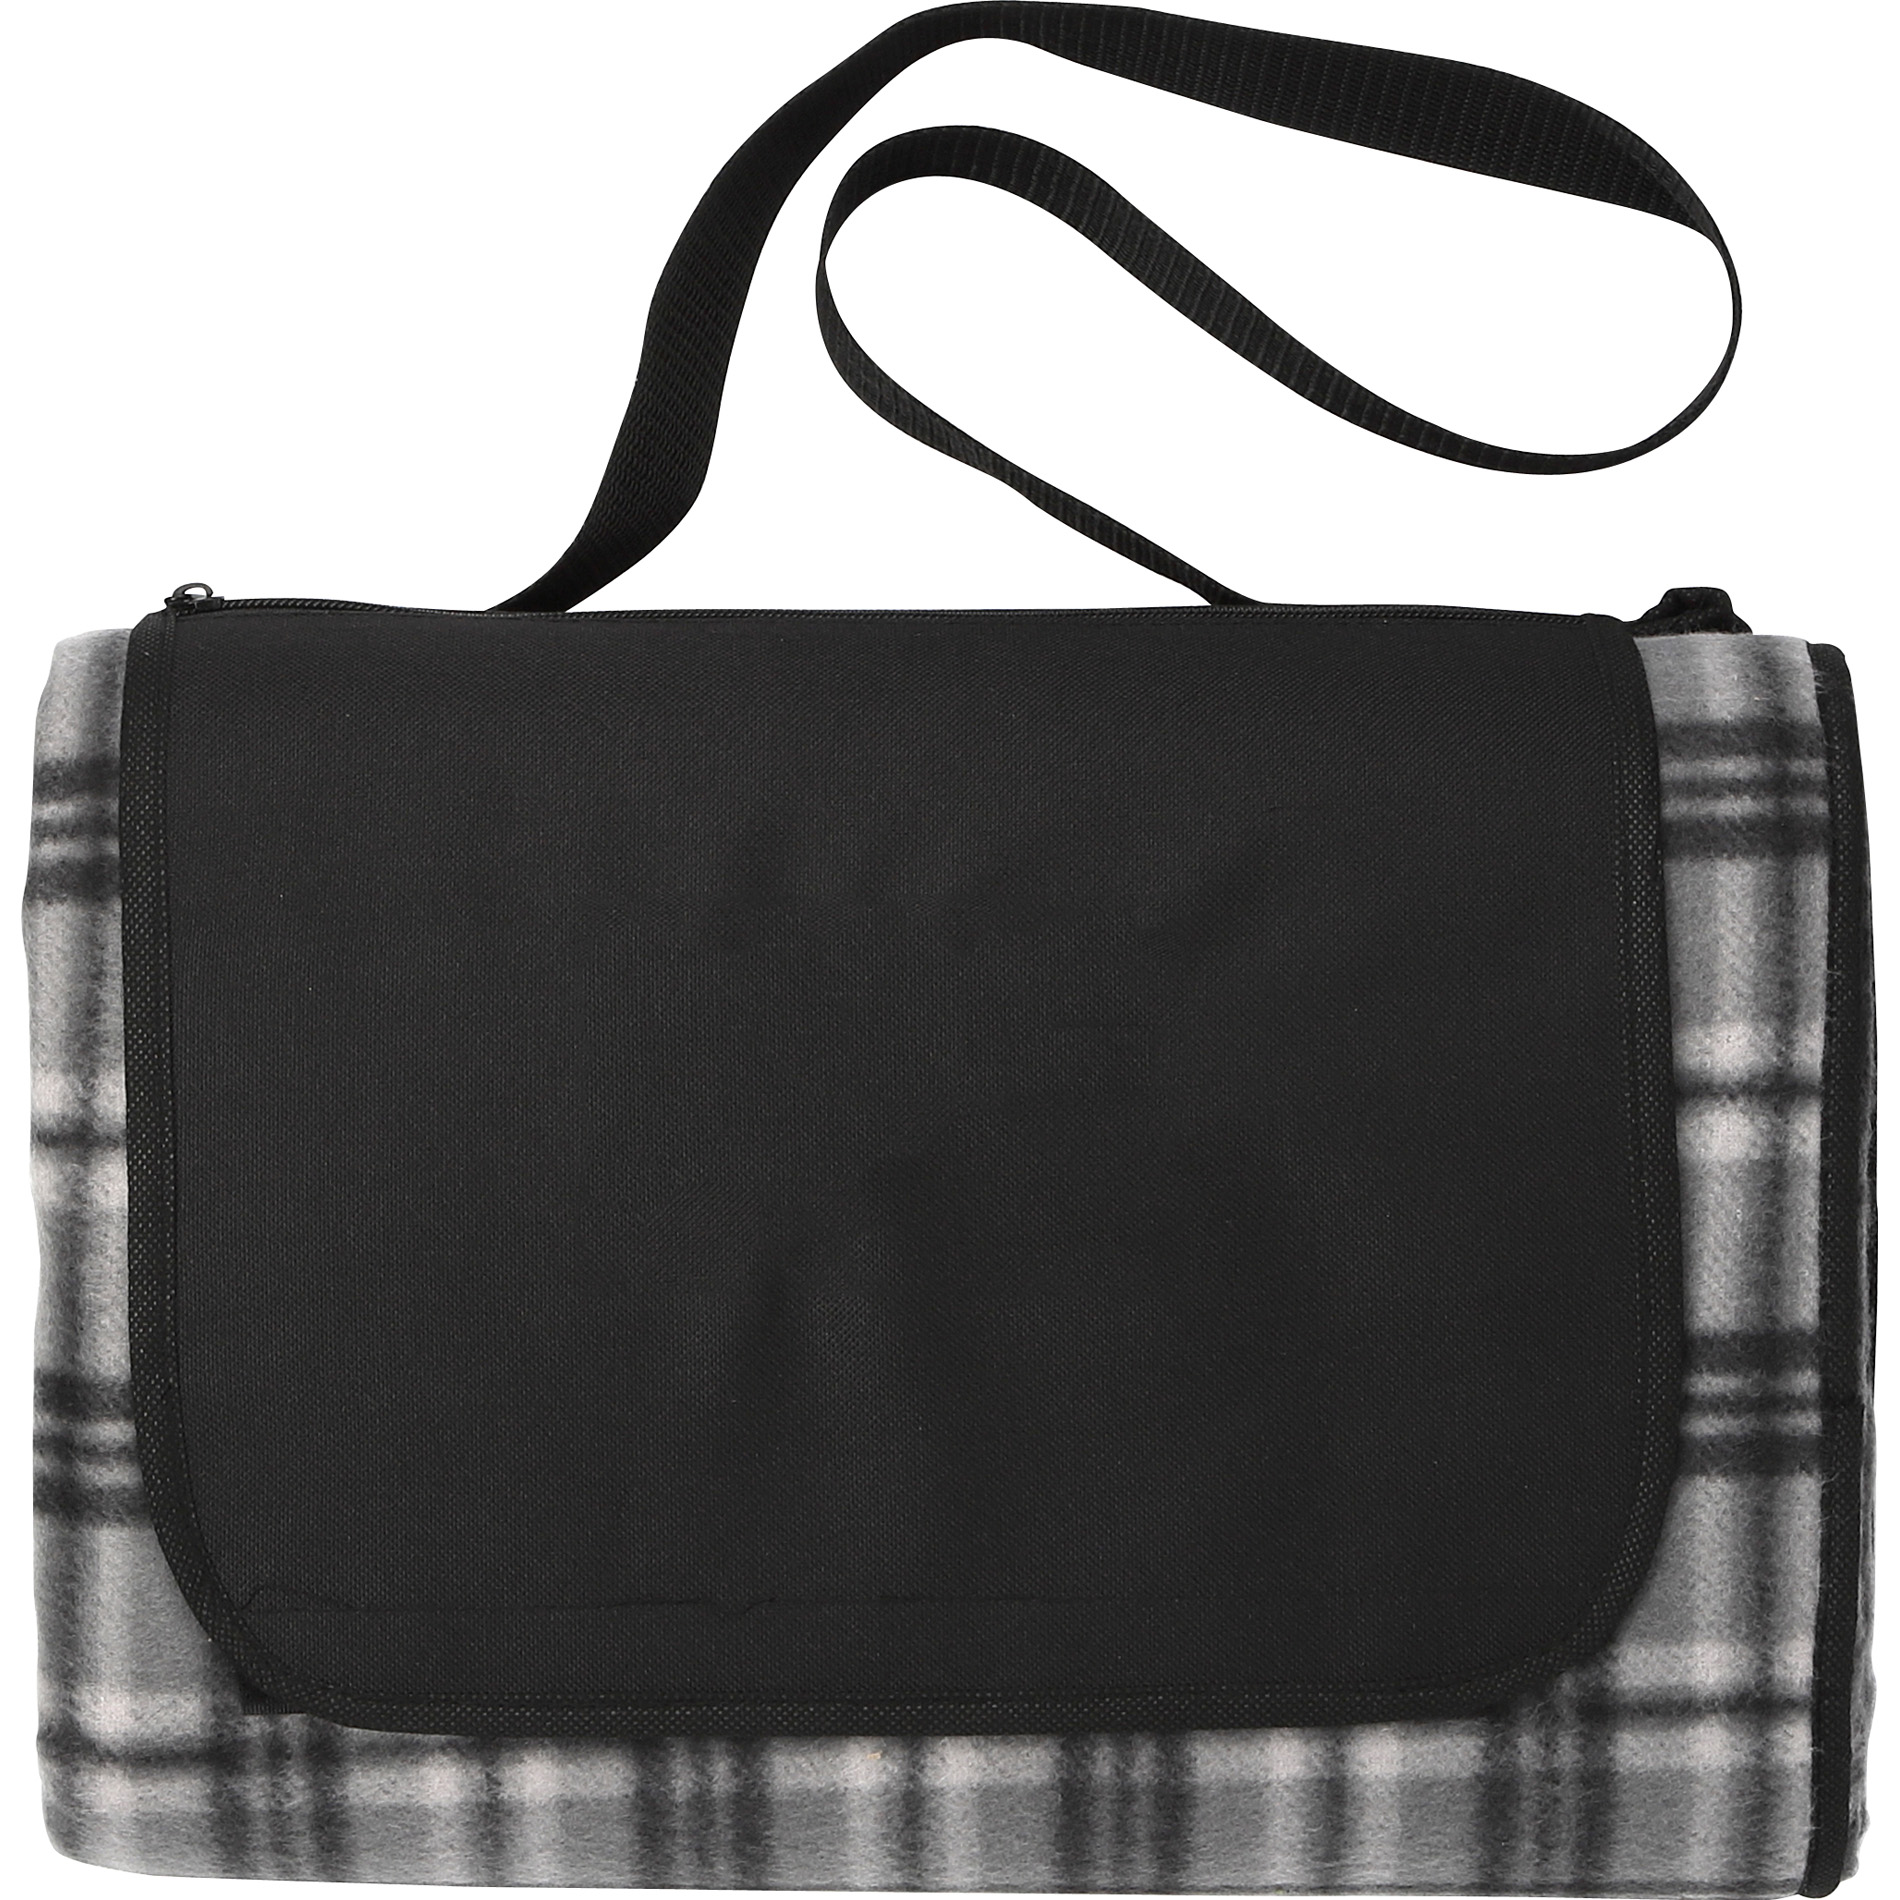 LEEDS 1081-41 - Extra Large Plaid Picnic Blanket Tote